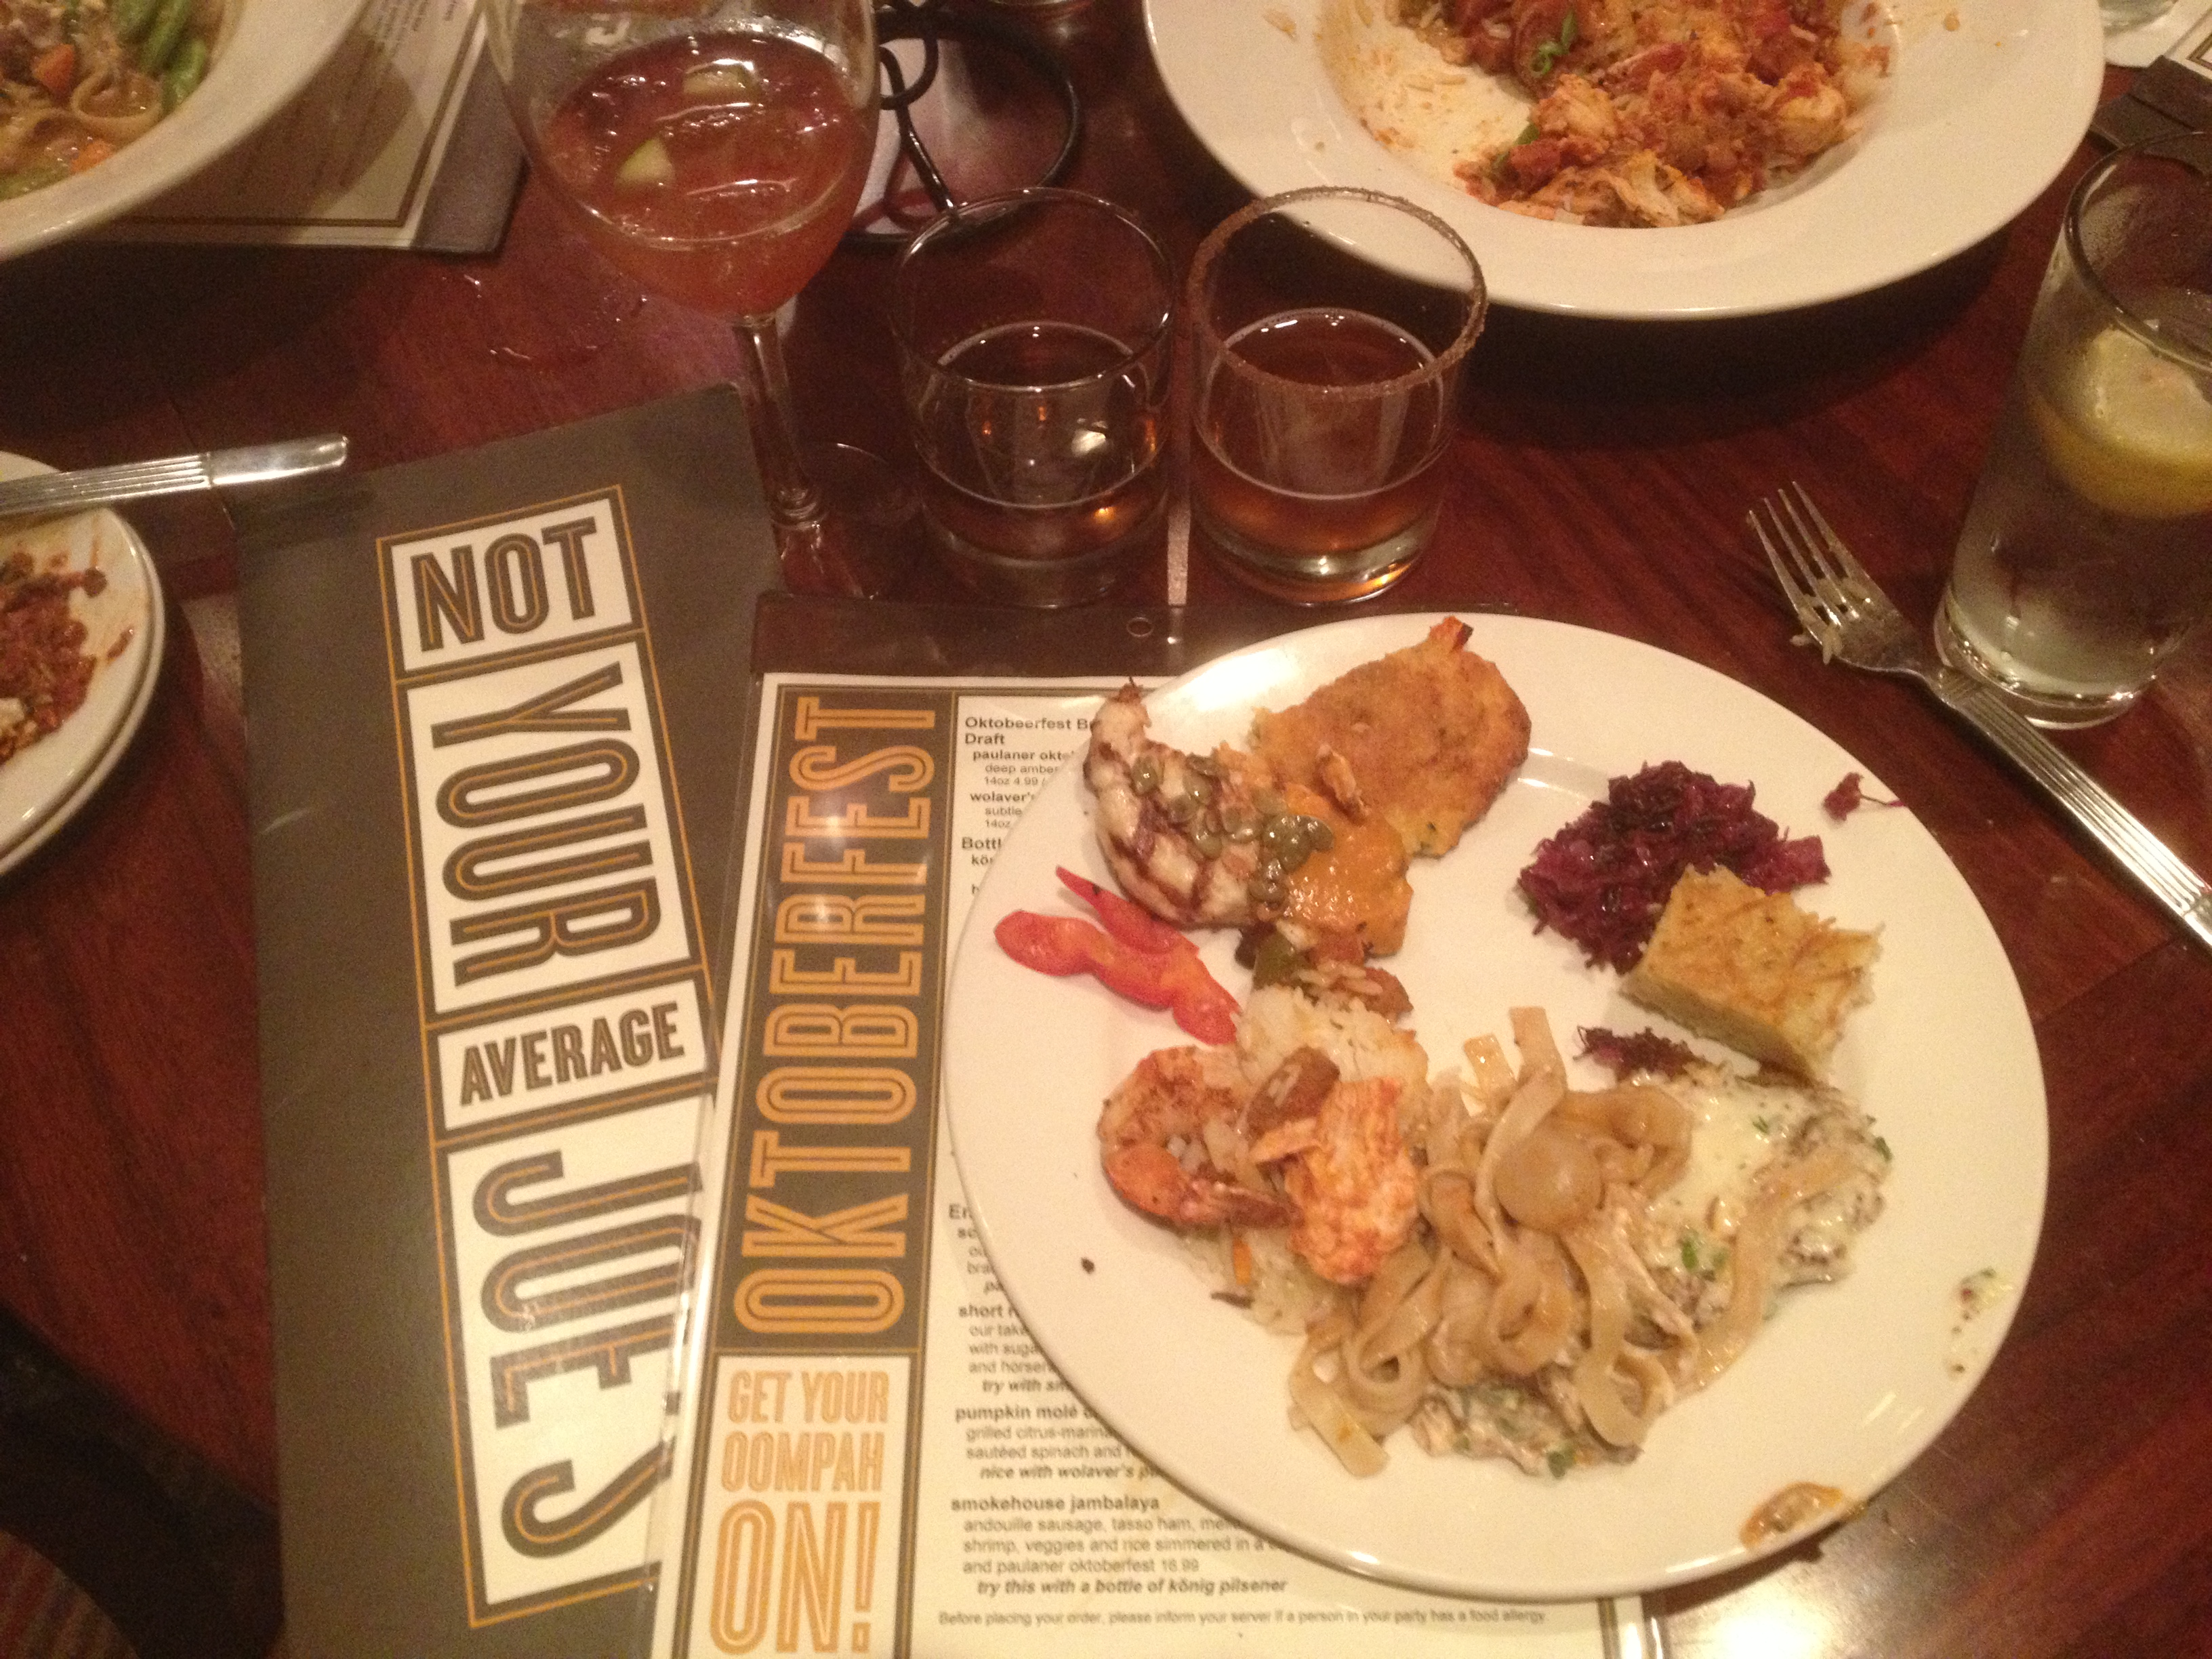 Dinner at Not Your Average Joe's